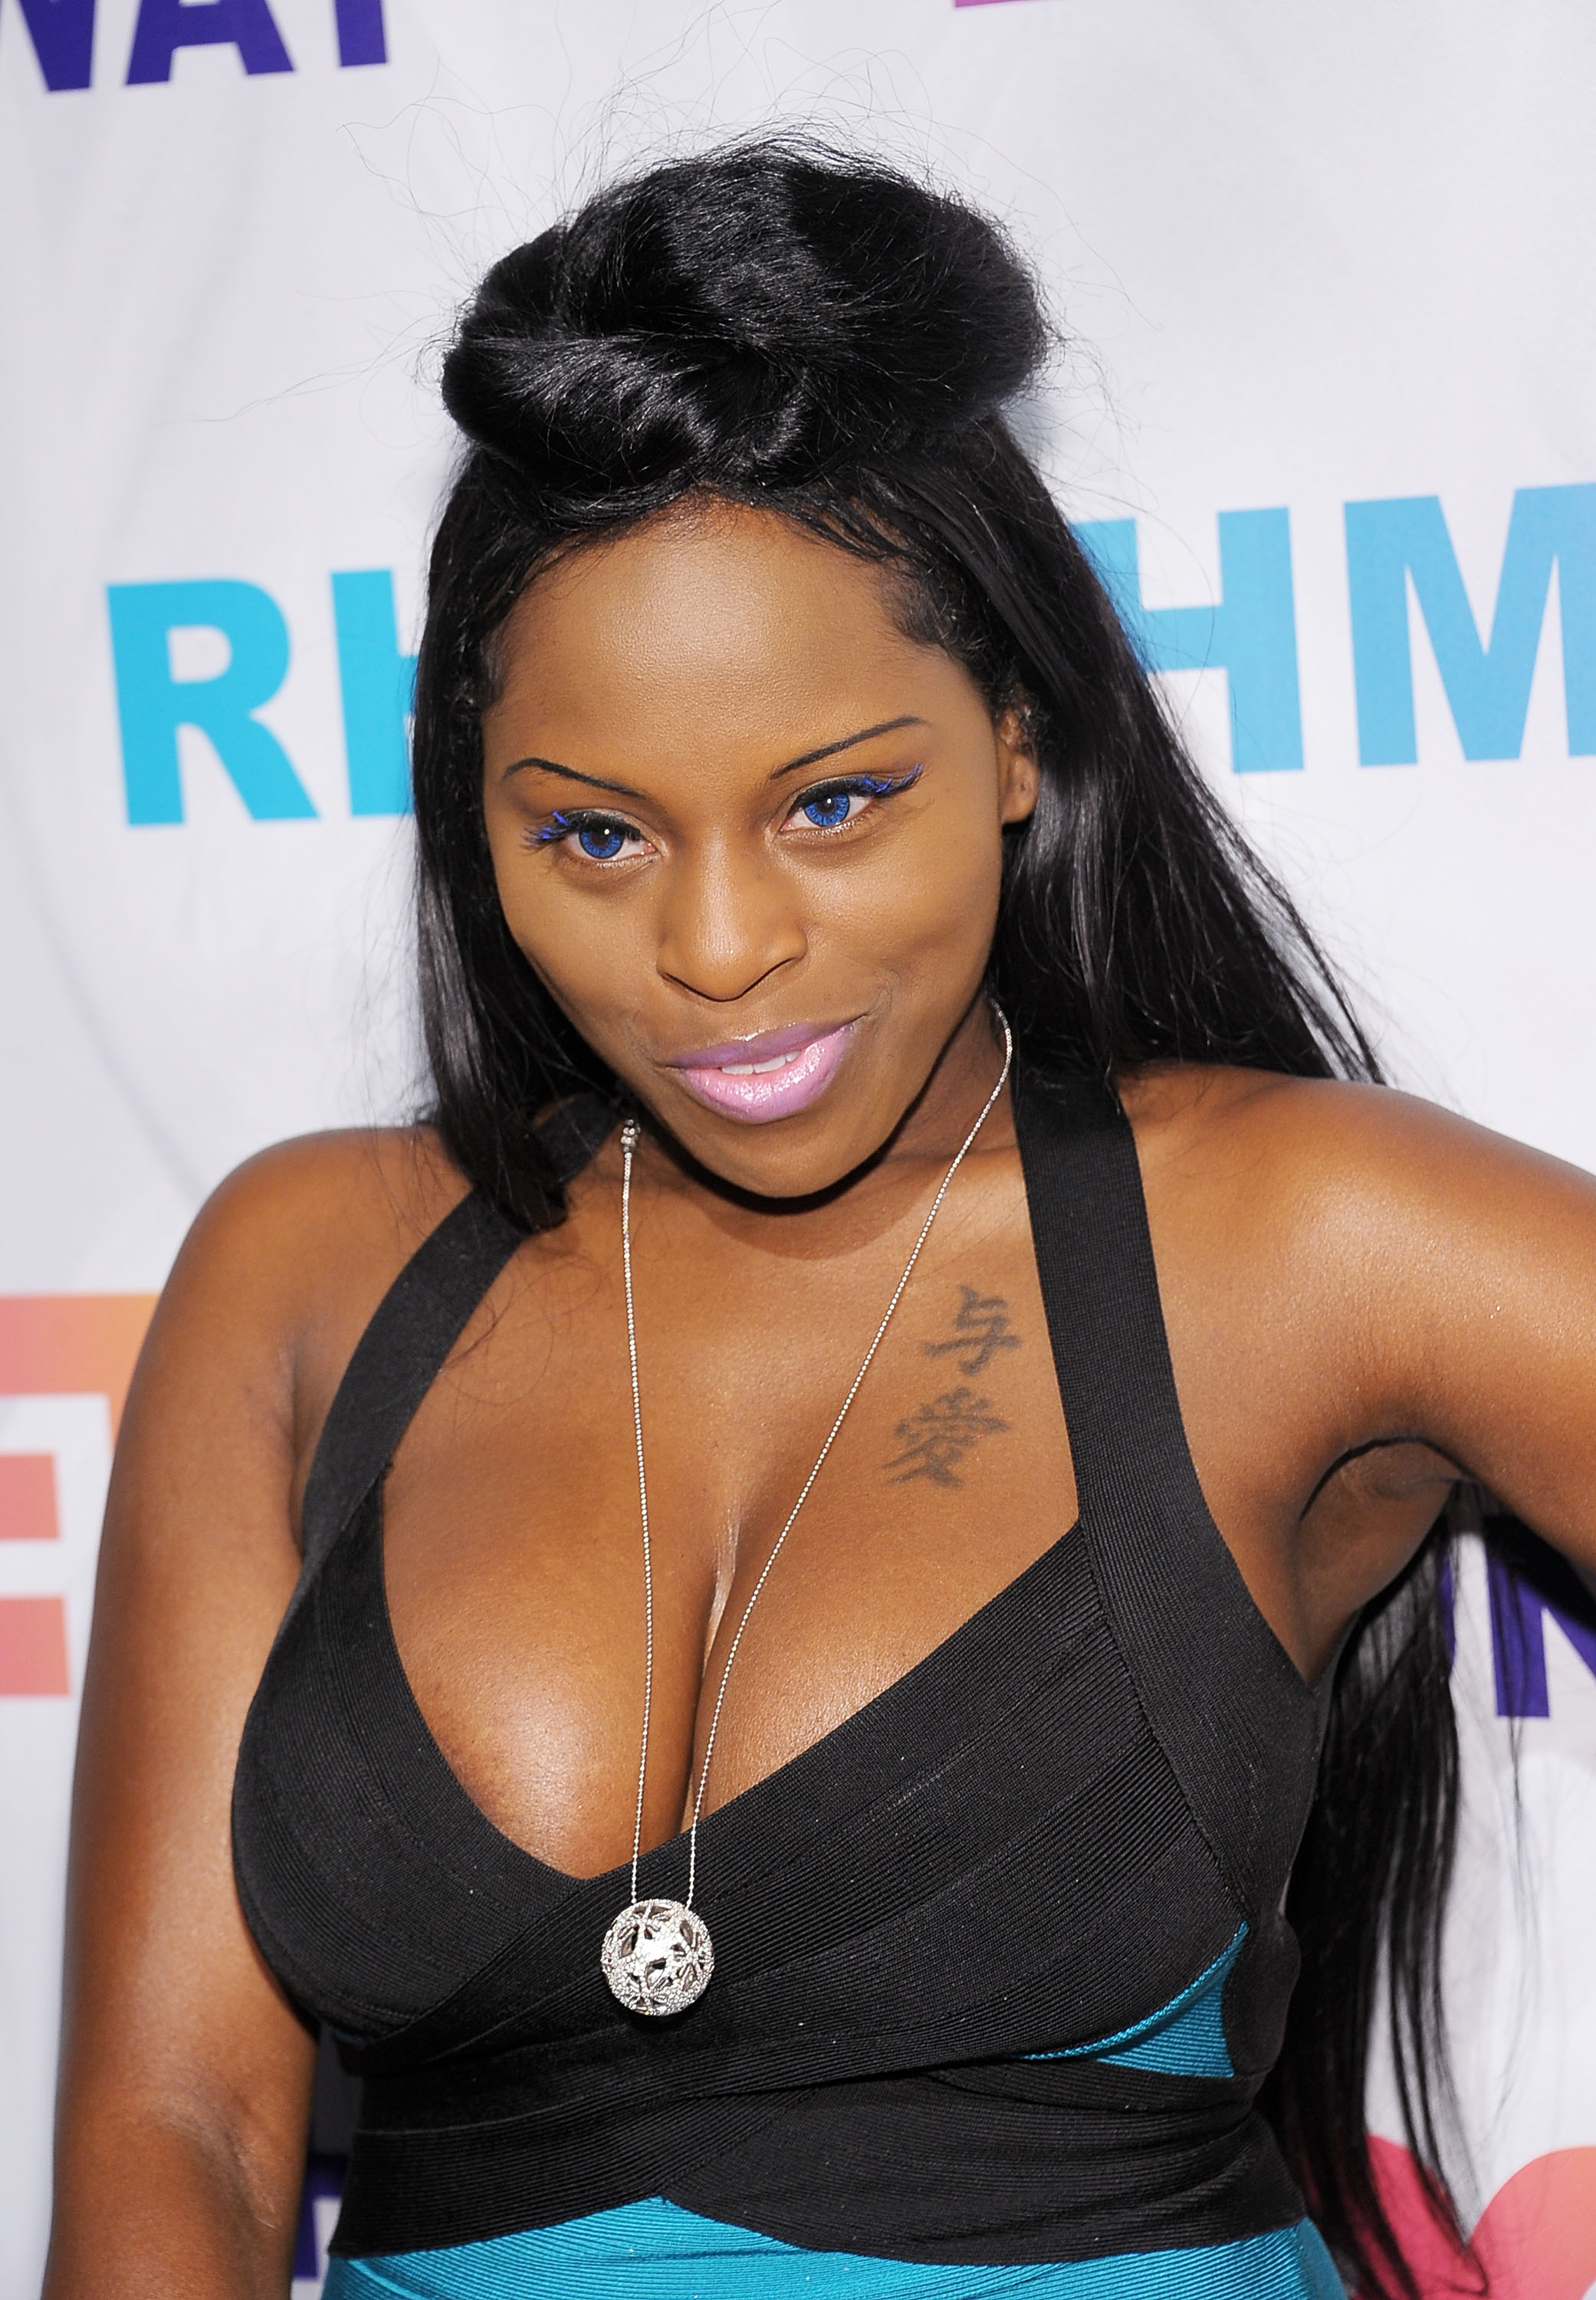 Krackblog Foxy Brown Offered 2 Million To Pose For Playboy